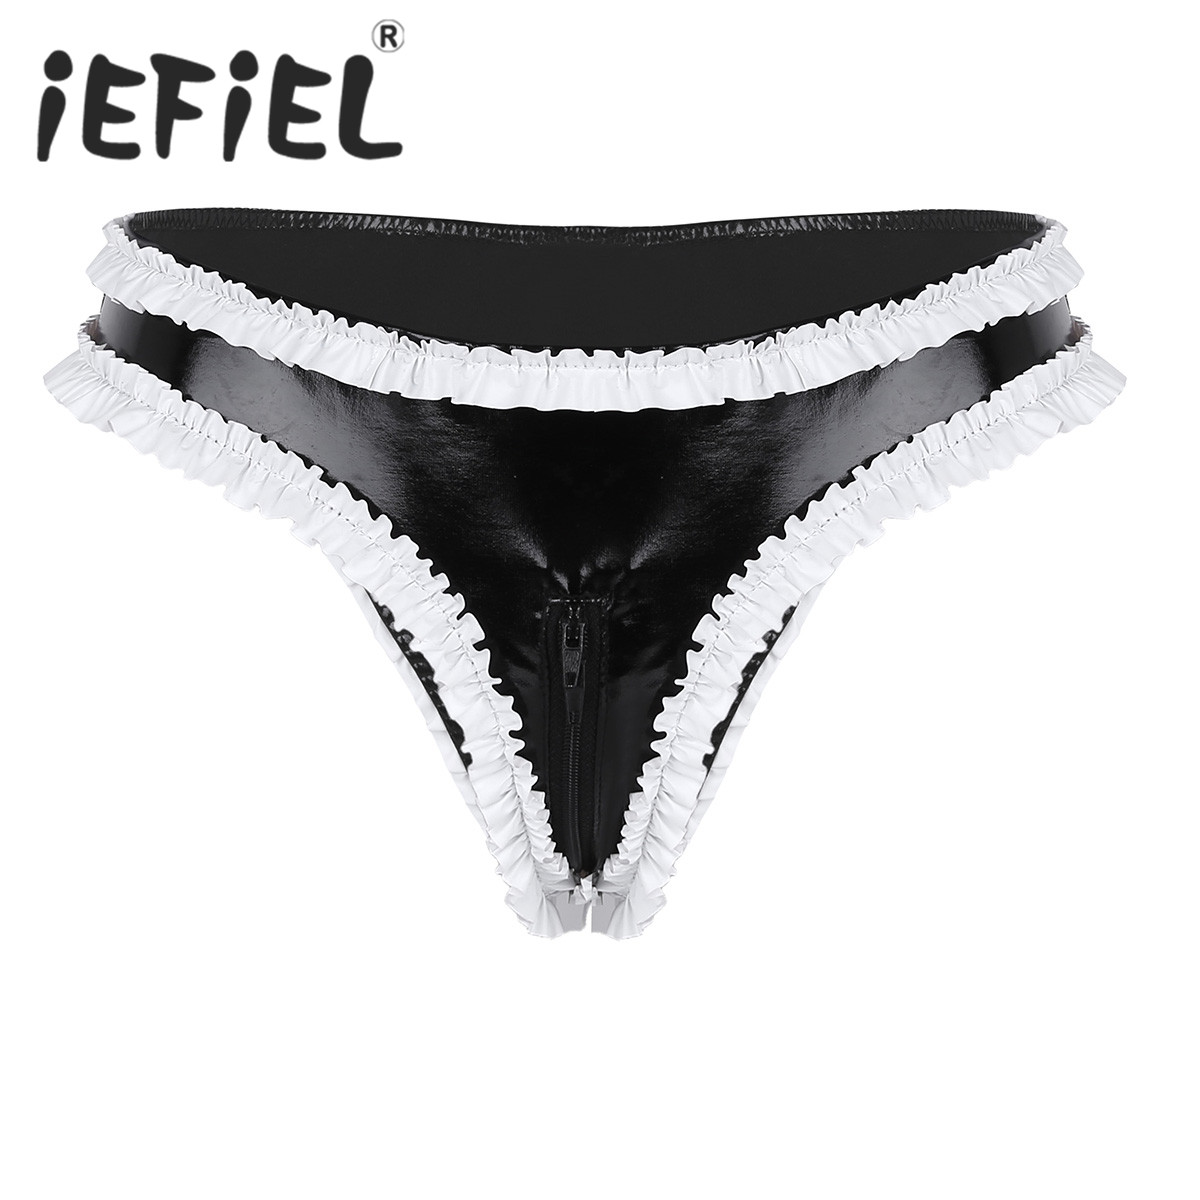 4f8aa8581626 Sexy Fashion Women Lingerie Wetlook Faux Leather Ruffled Trims Zipper  Crotch High Cut Low Rise Mini